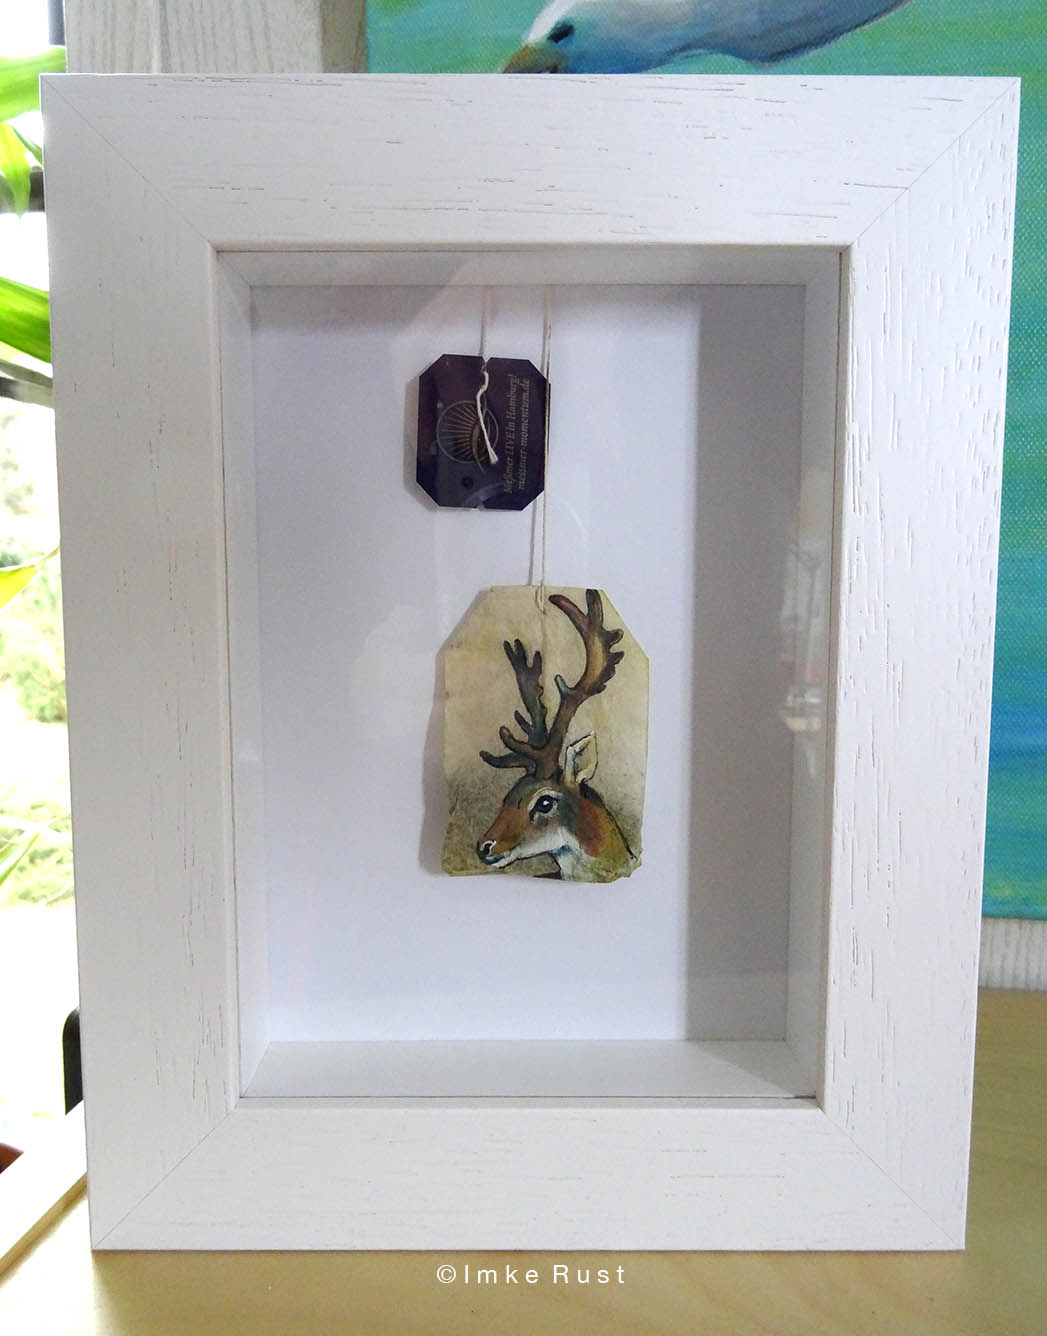 This neat box frame seems perfect for displaying your Teabag Totem. (Frame from Boesner, CAJA, white wood 13x18cm)